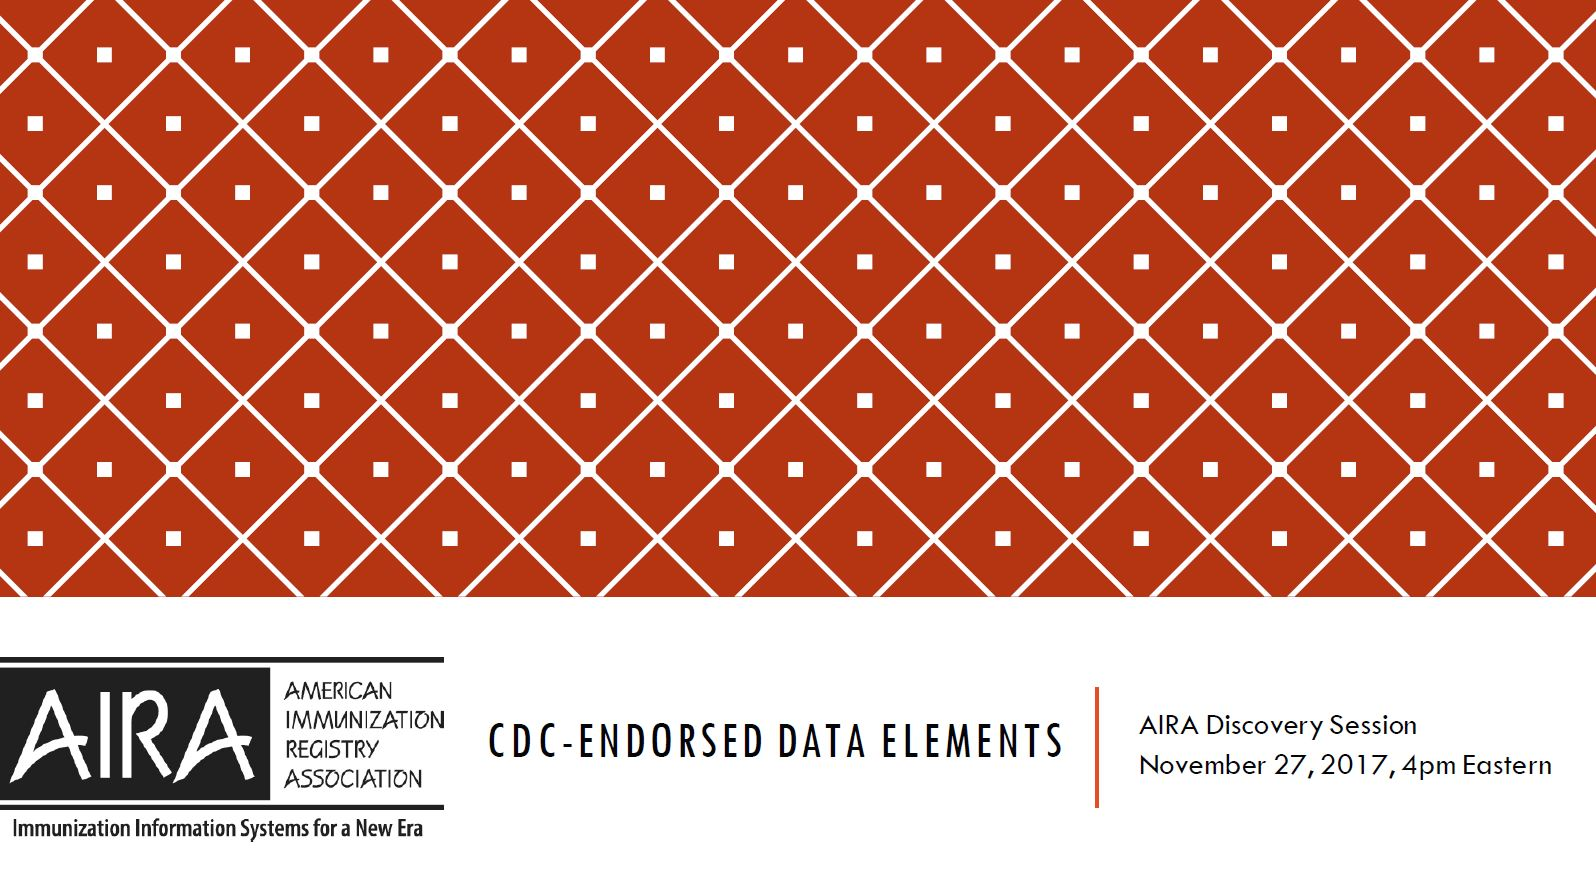 AIRA Discovery Session: CDC-Endorsed Data Elements